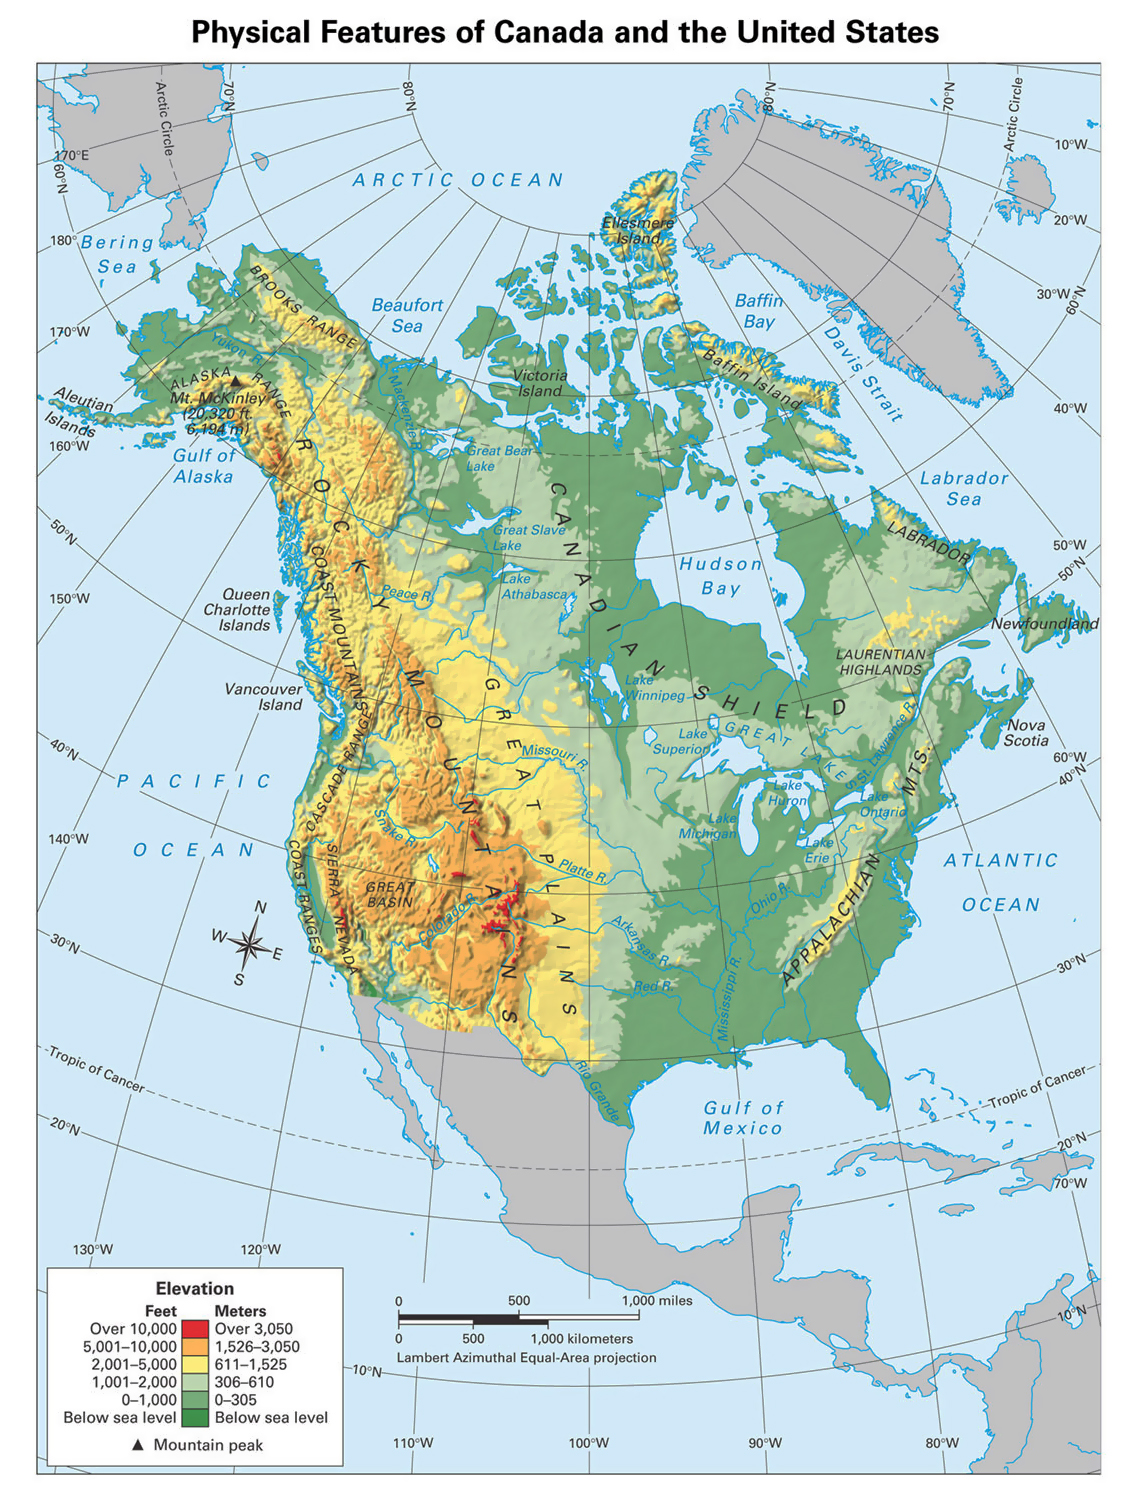 Maps Of North America And North American Countries Political - Maps of north america